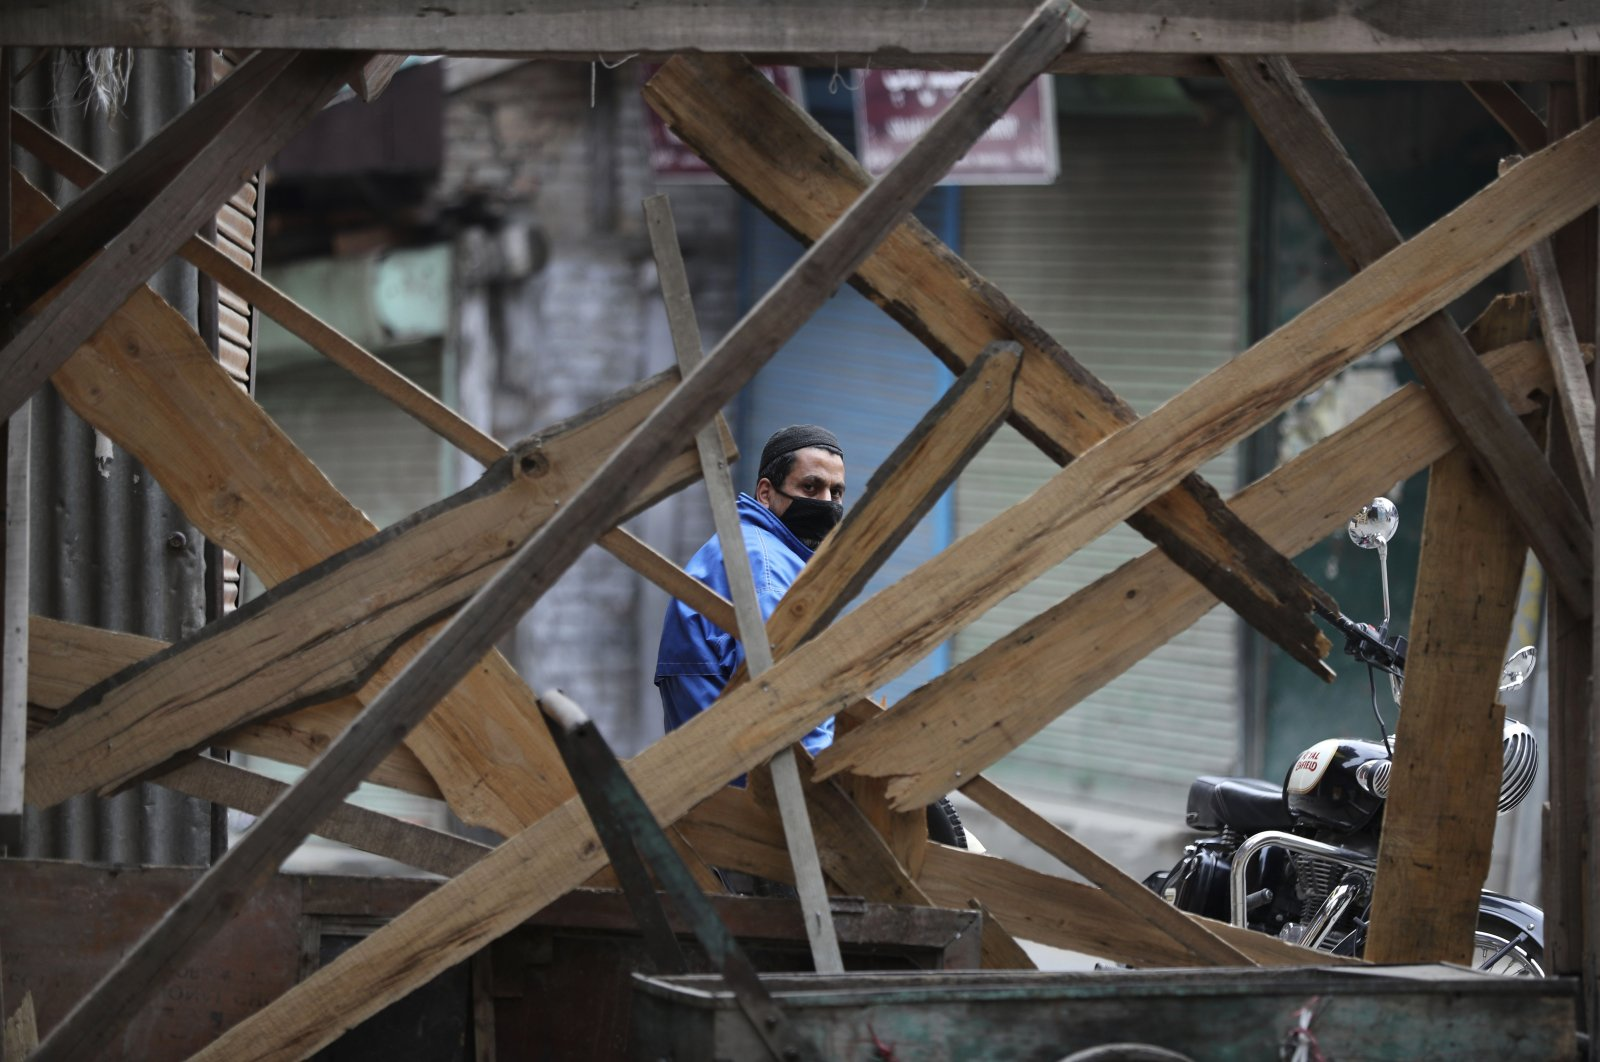 A Kashmiri volunteer looks through temporary barricades erected to prevent outsiders from entering an area declared as red zone by the government during lockdown in Srinagar, Indian controlled Kashmir, Tuesday, April 14, 2020. (AP Photo)